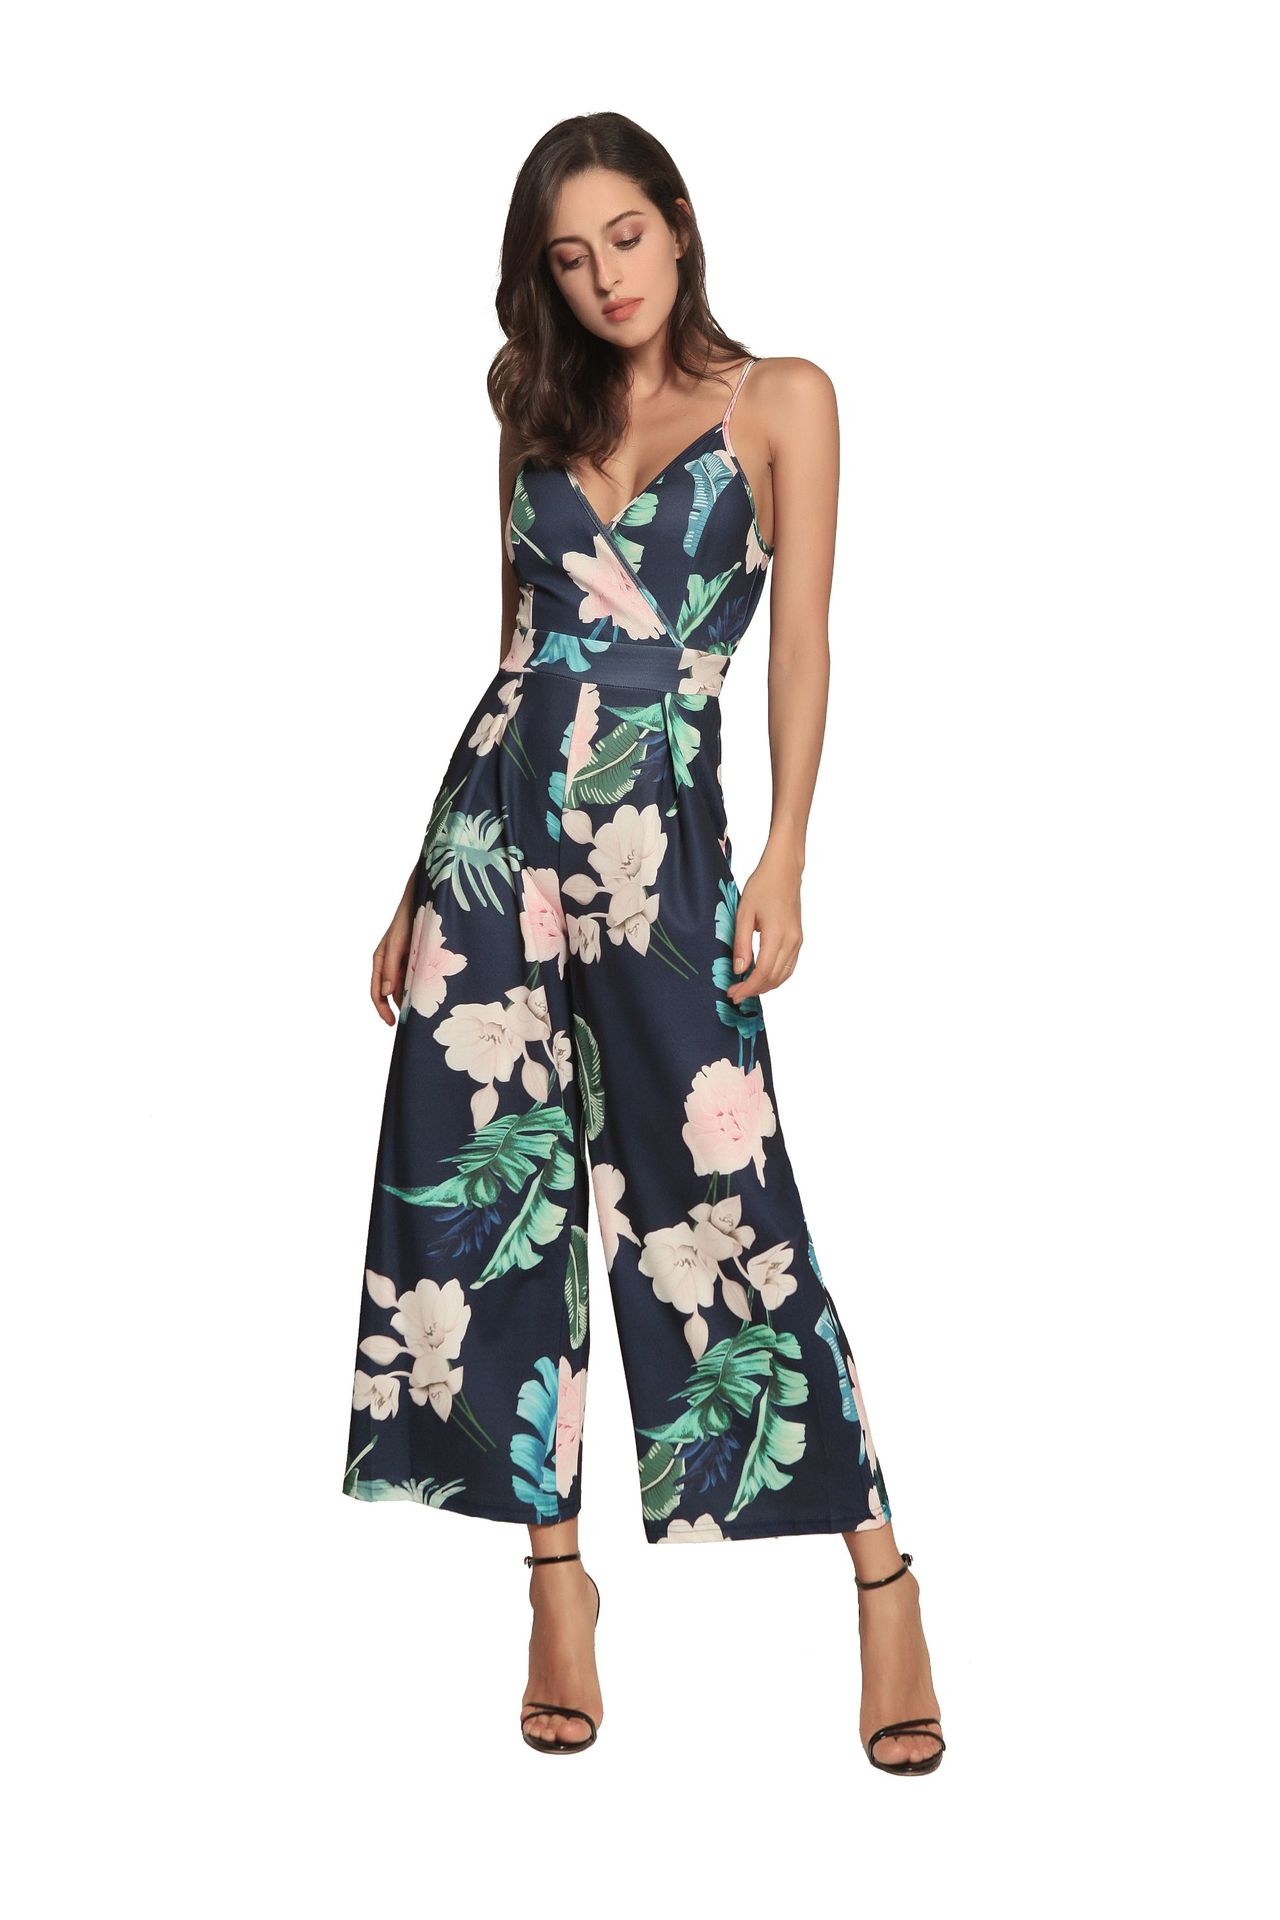 eae5f80fc3a0 2019 Floral Print Blue Spaghetti Strap Jumpsuit Sleeveless Backless ...